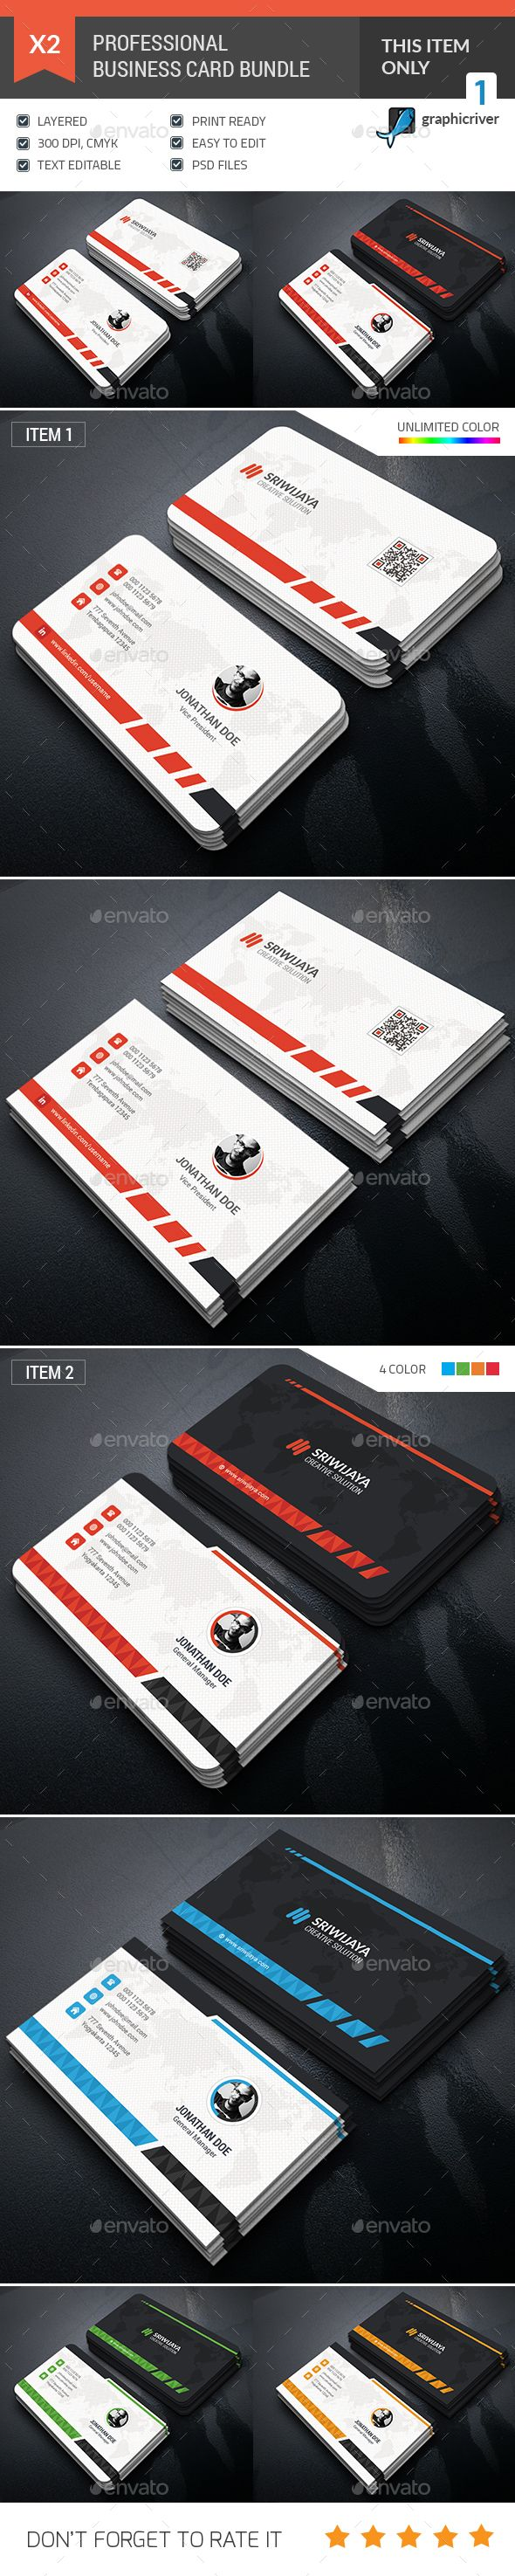 Best 25+ Buy business cards ideas on Pinterest   Corporate ...